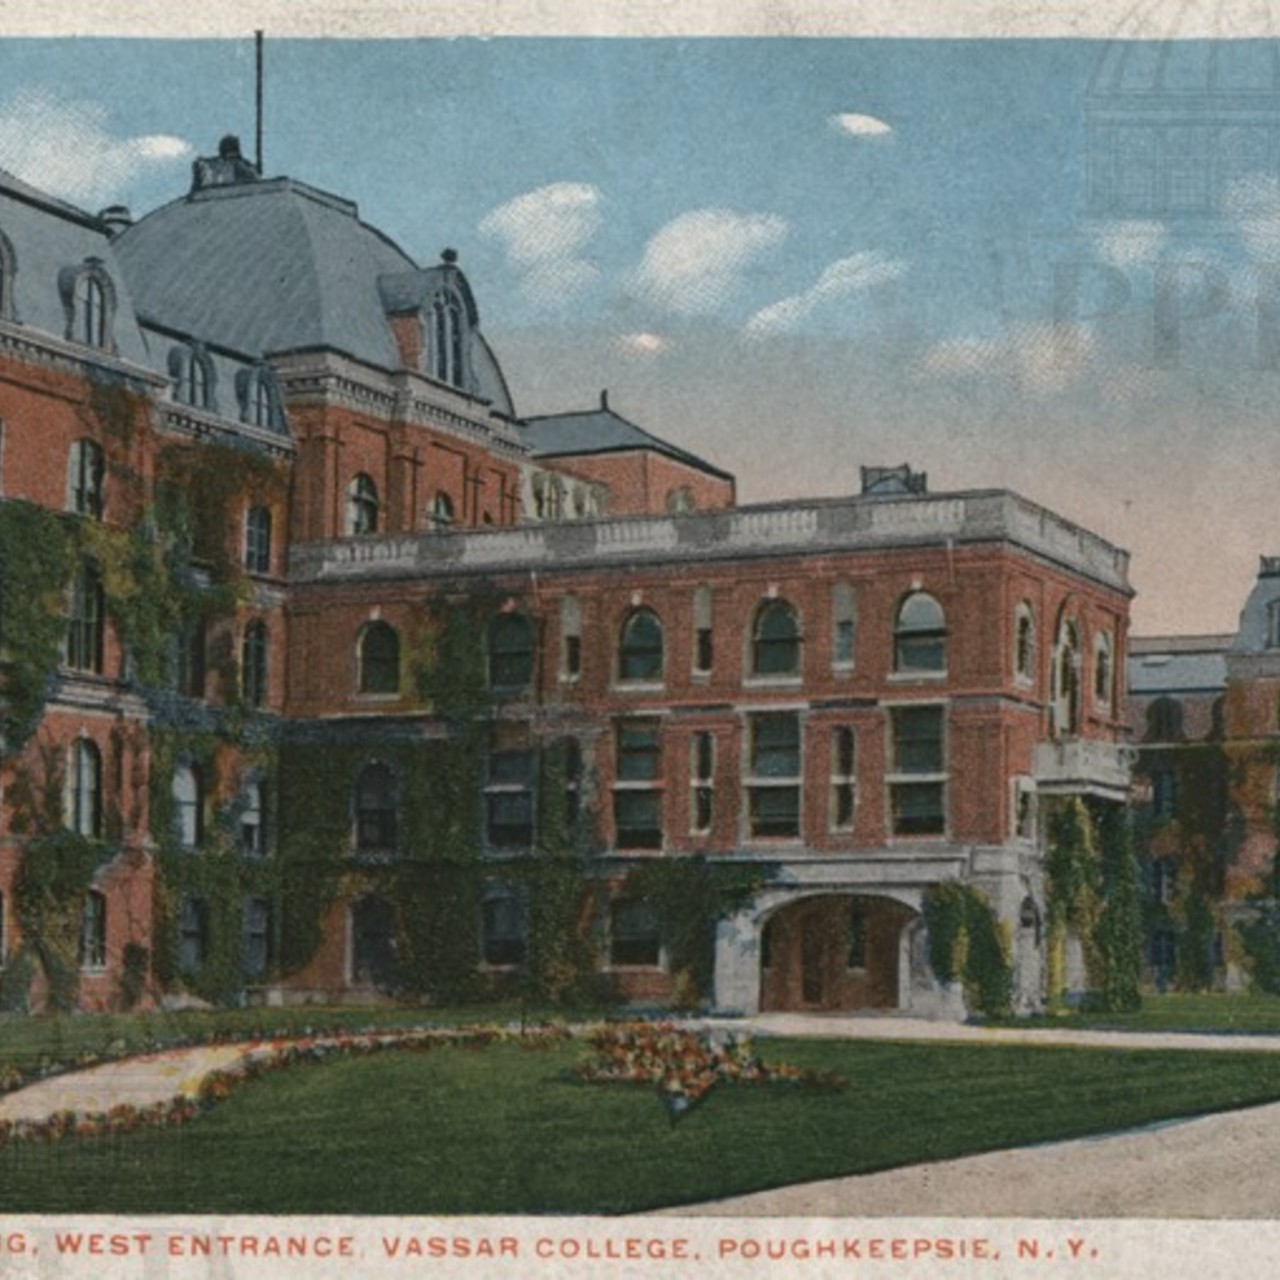 Main Building, West Entrance, Vassar College